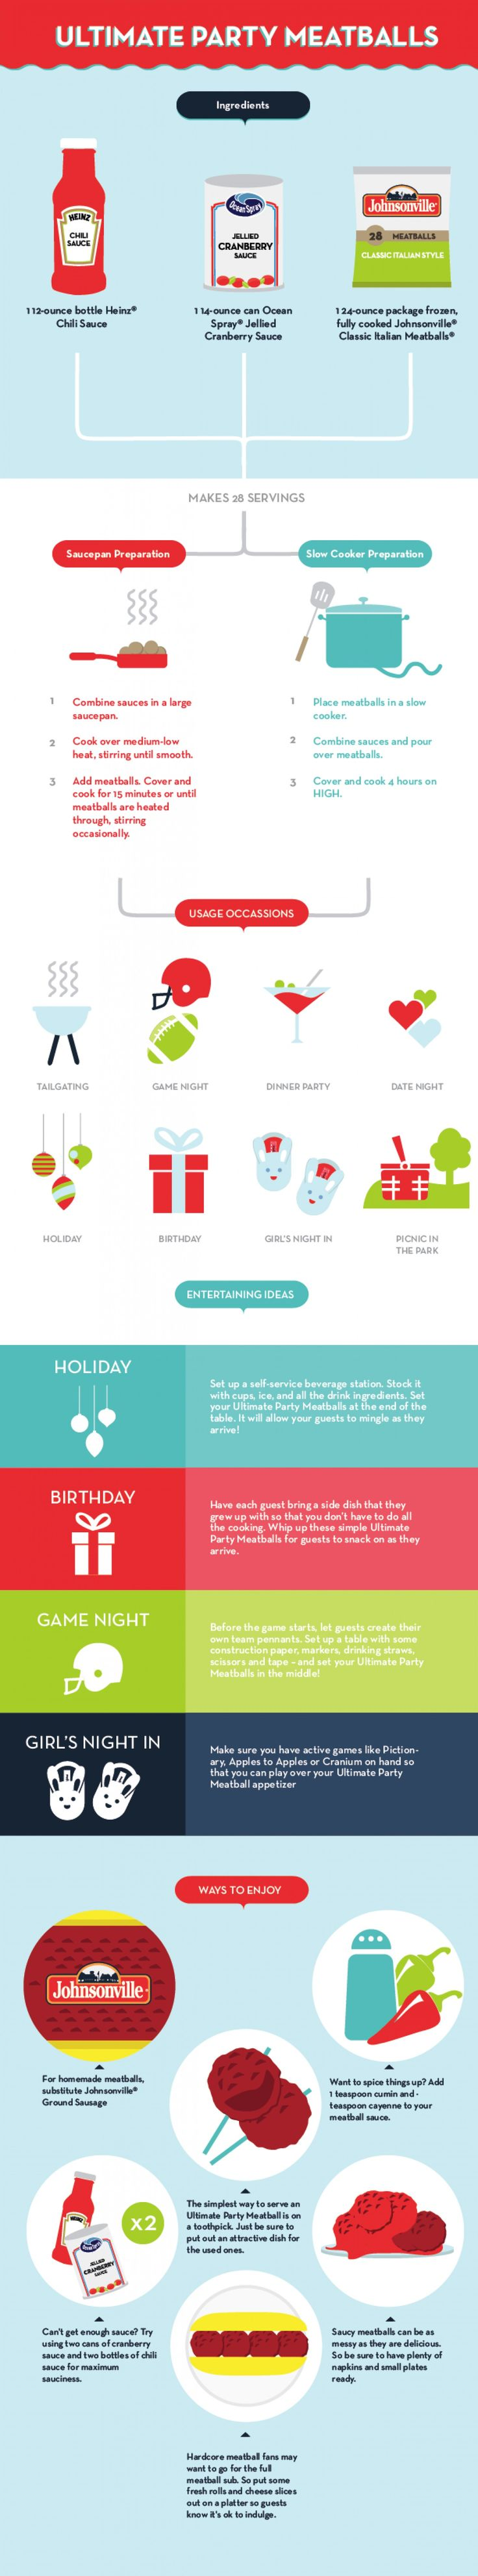 Ultimate Party Meatballs | Infographics | Pinterest